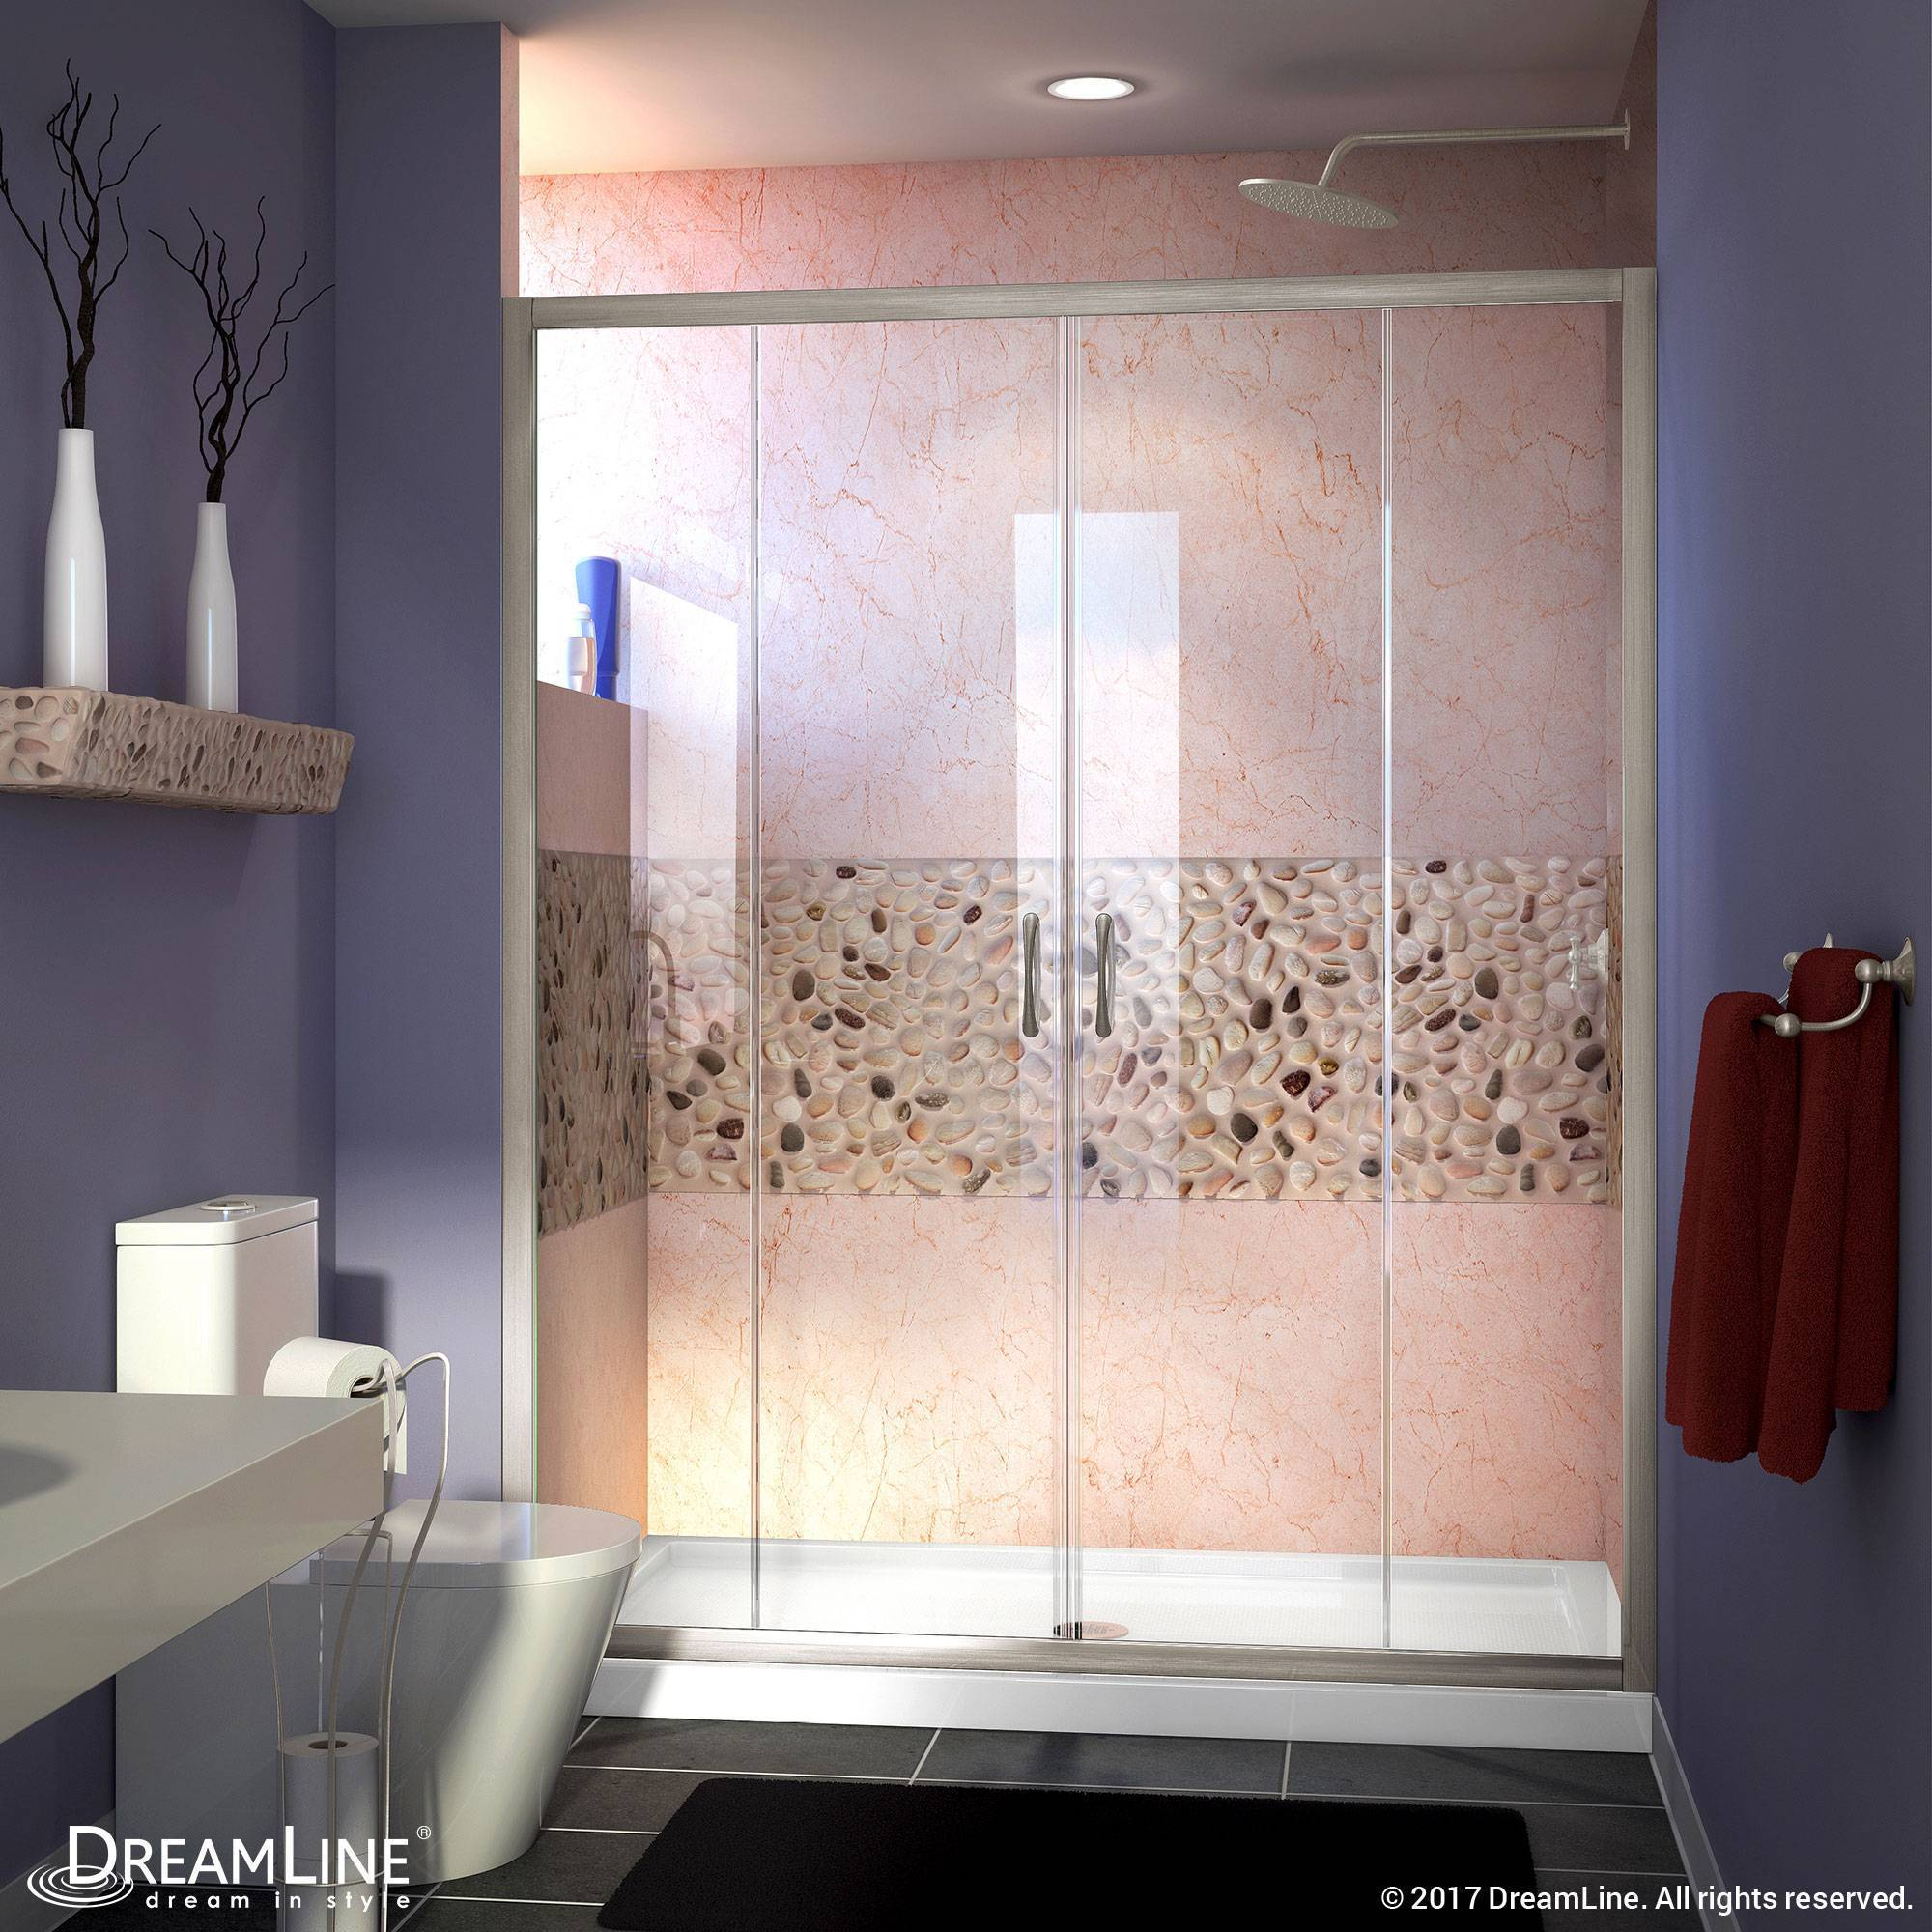 DreamLine Visions Sliding Shower Door